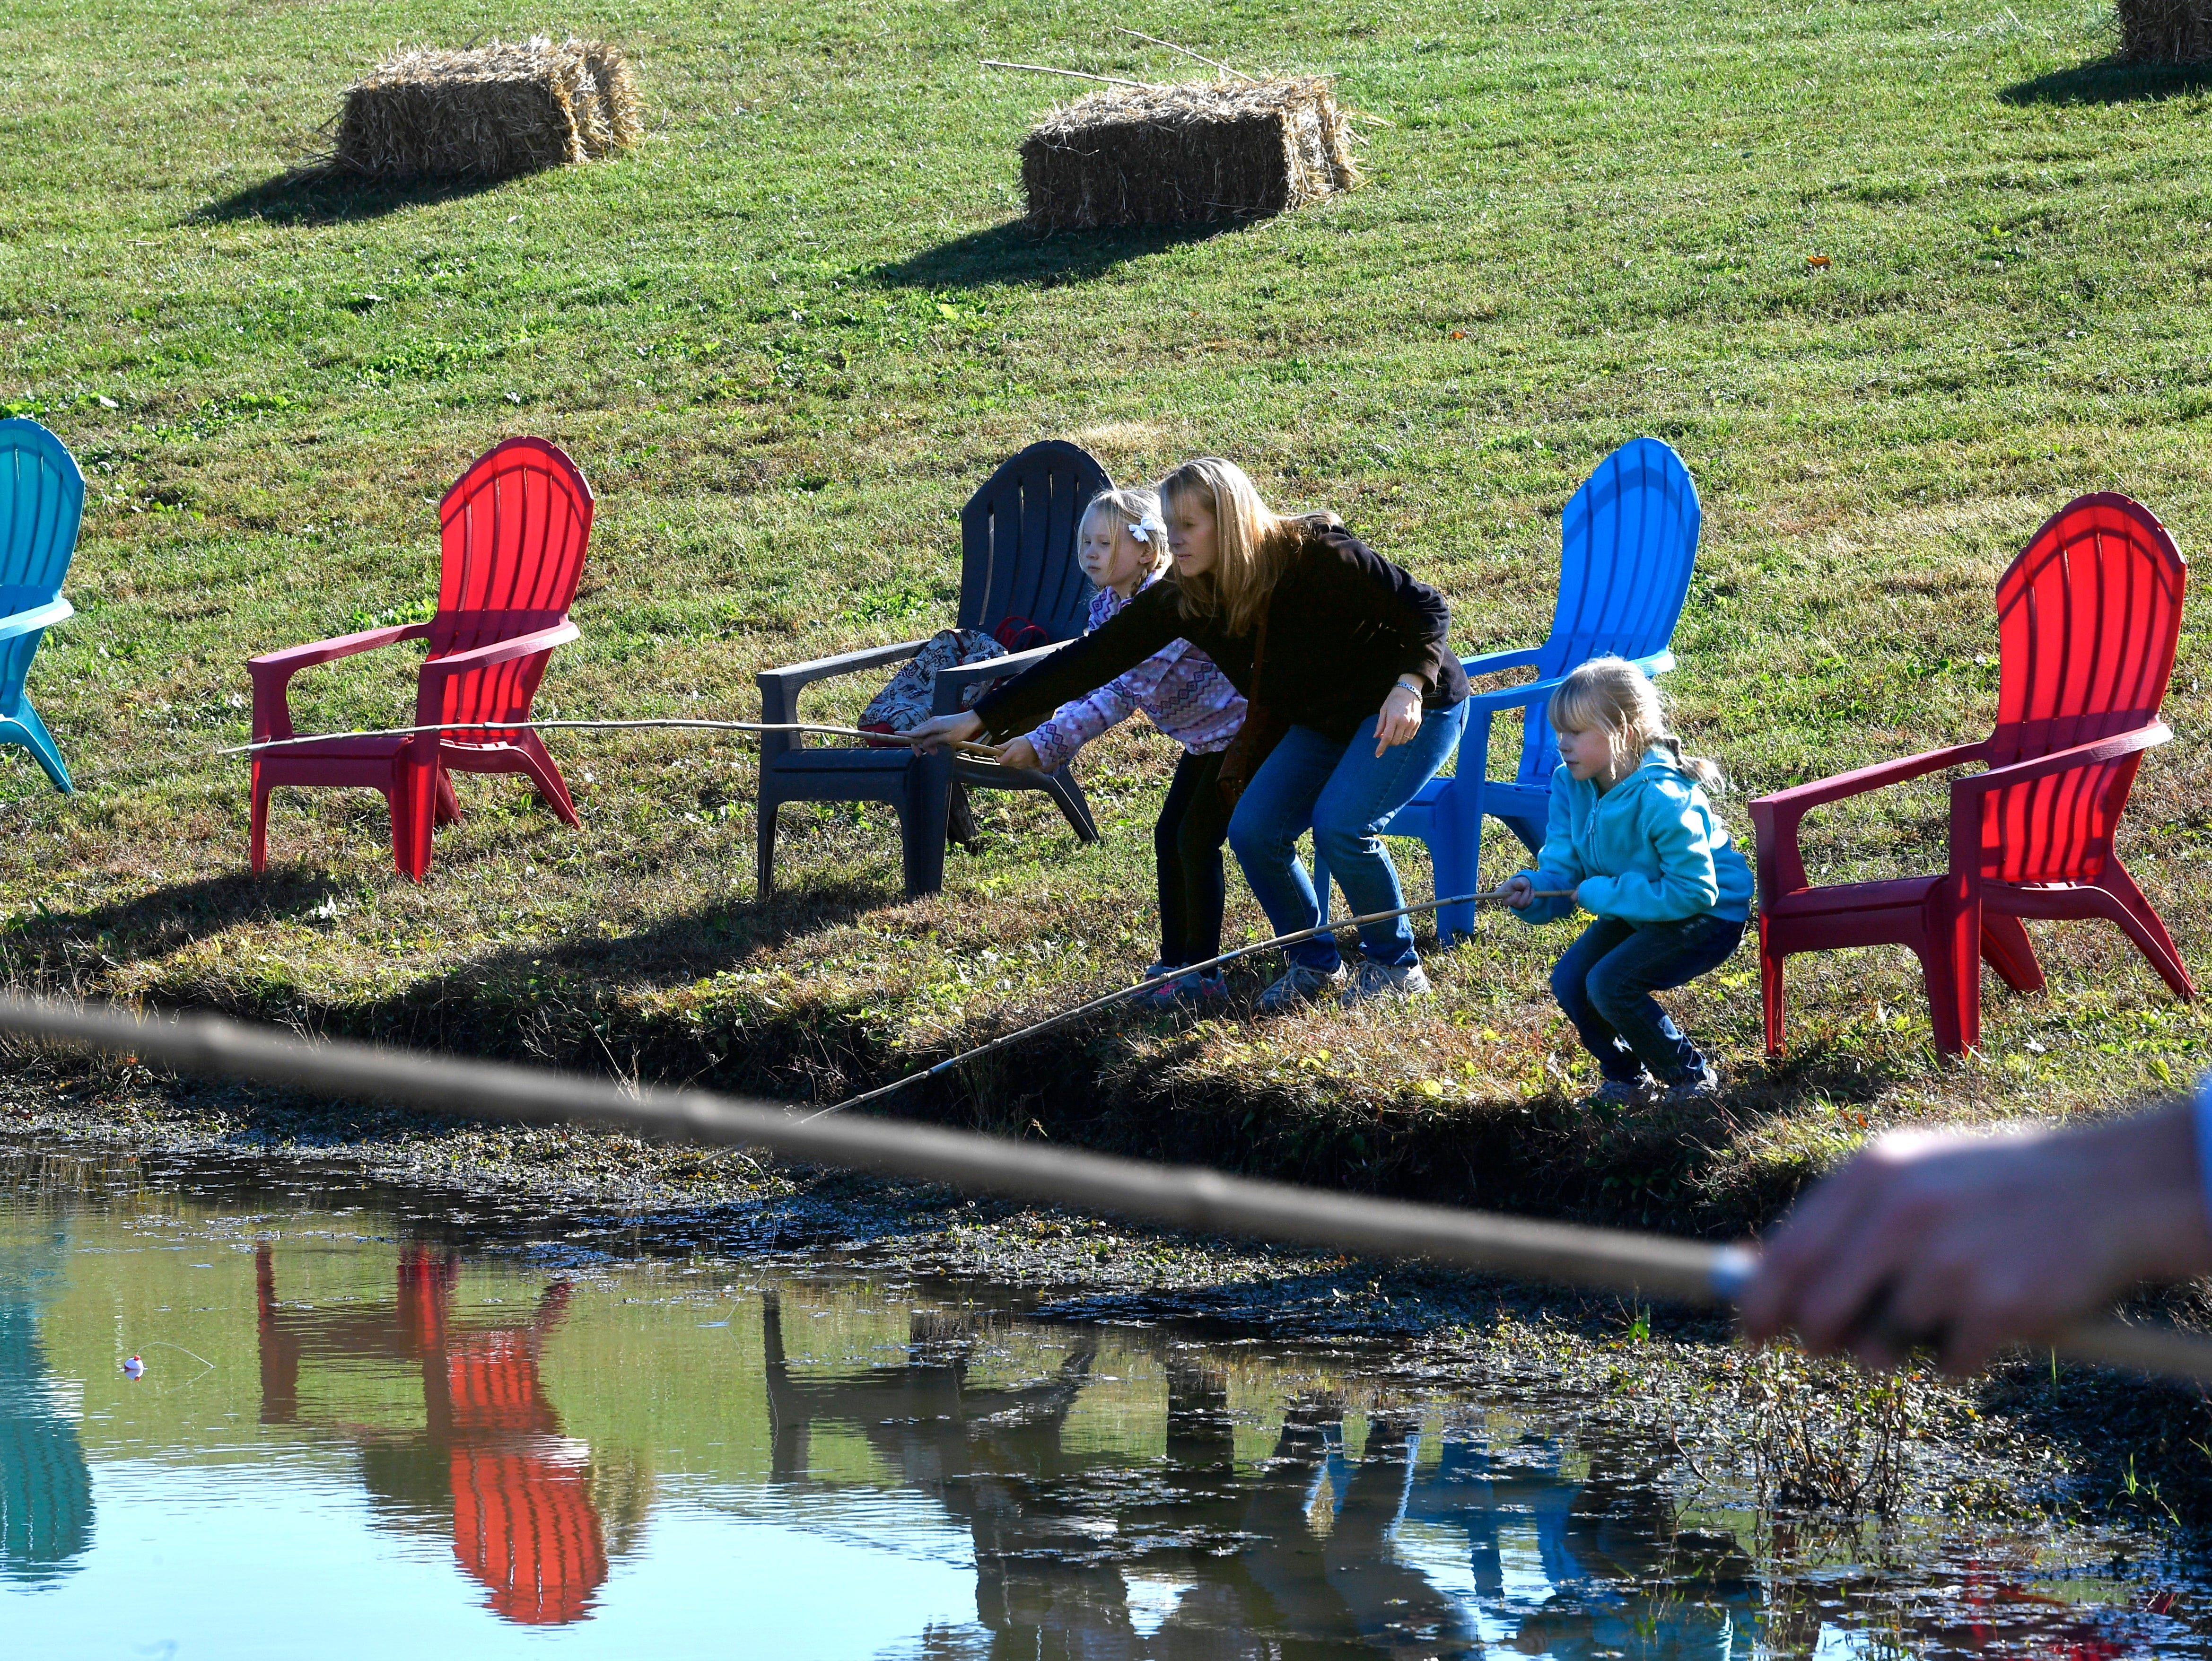 Family Day at the Park at Harlinsdale Farms gave families time to try their hand at fishing with cane poles in the pond Saturday Nov. 3, 2018, in Franklin, Tenn.